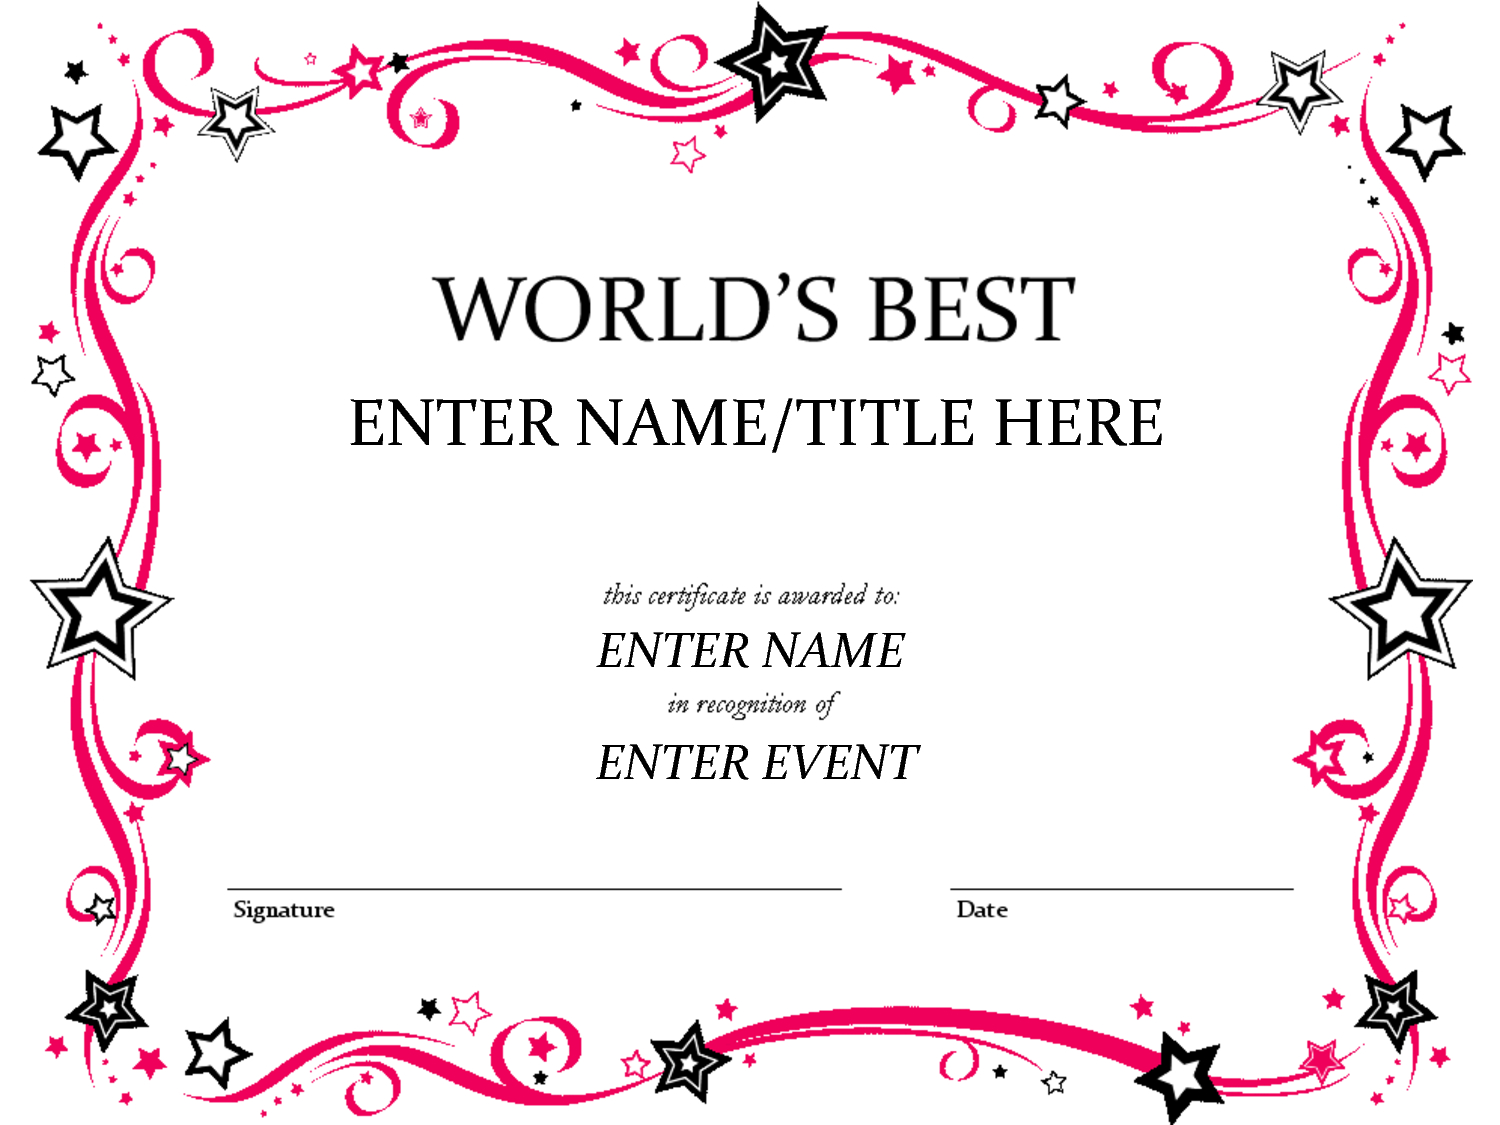 Talent Show Award | Babysitting | Free Certificate Templates With Regard To Best Employee Award Certificate Templates